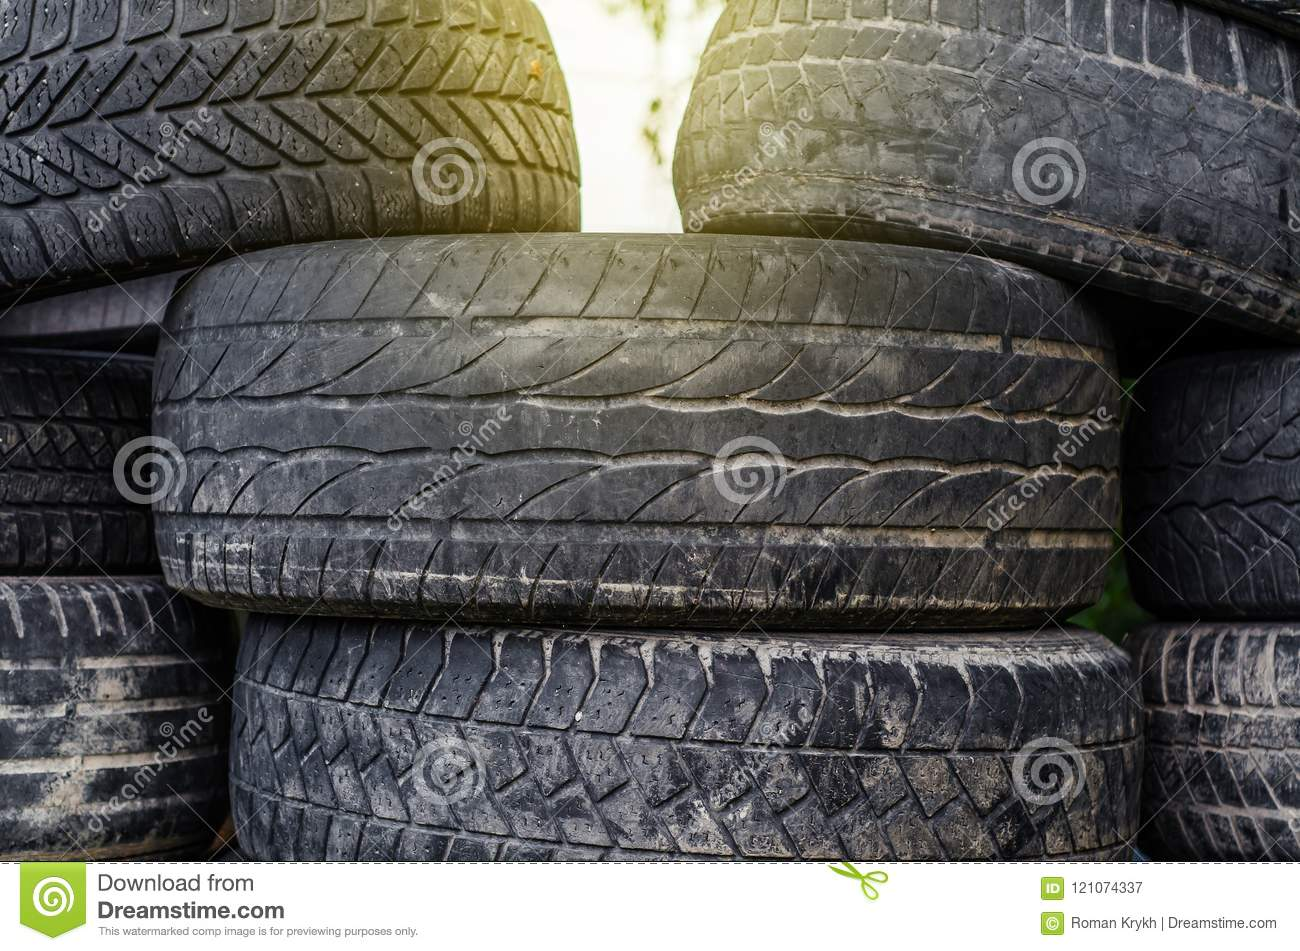 Old used car tires stacked in stacks